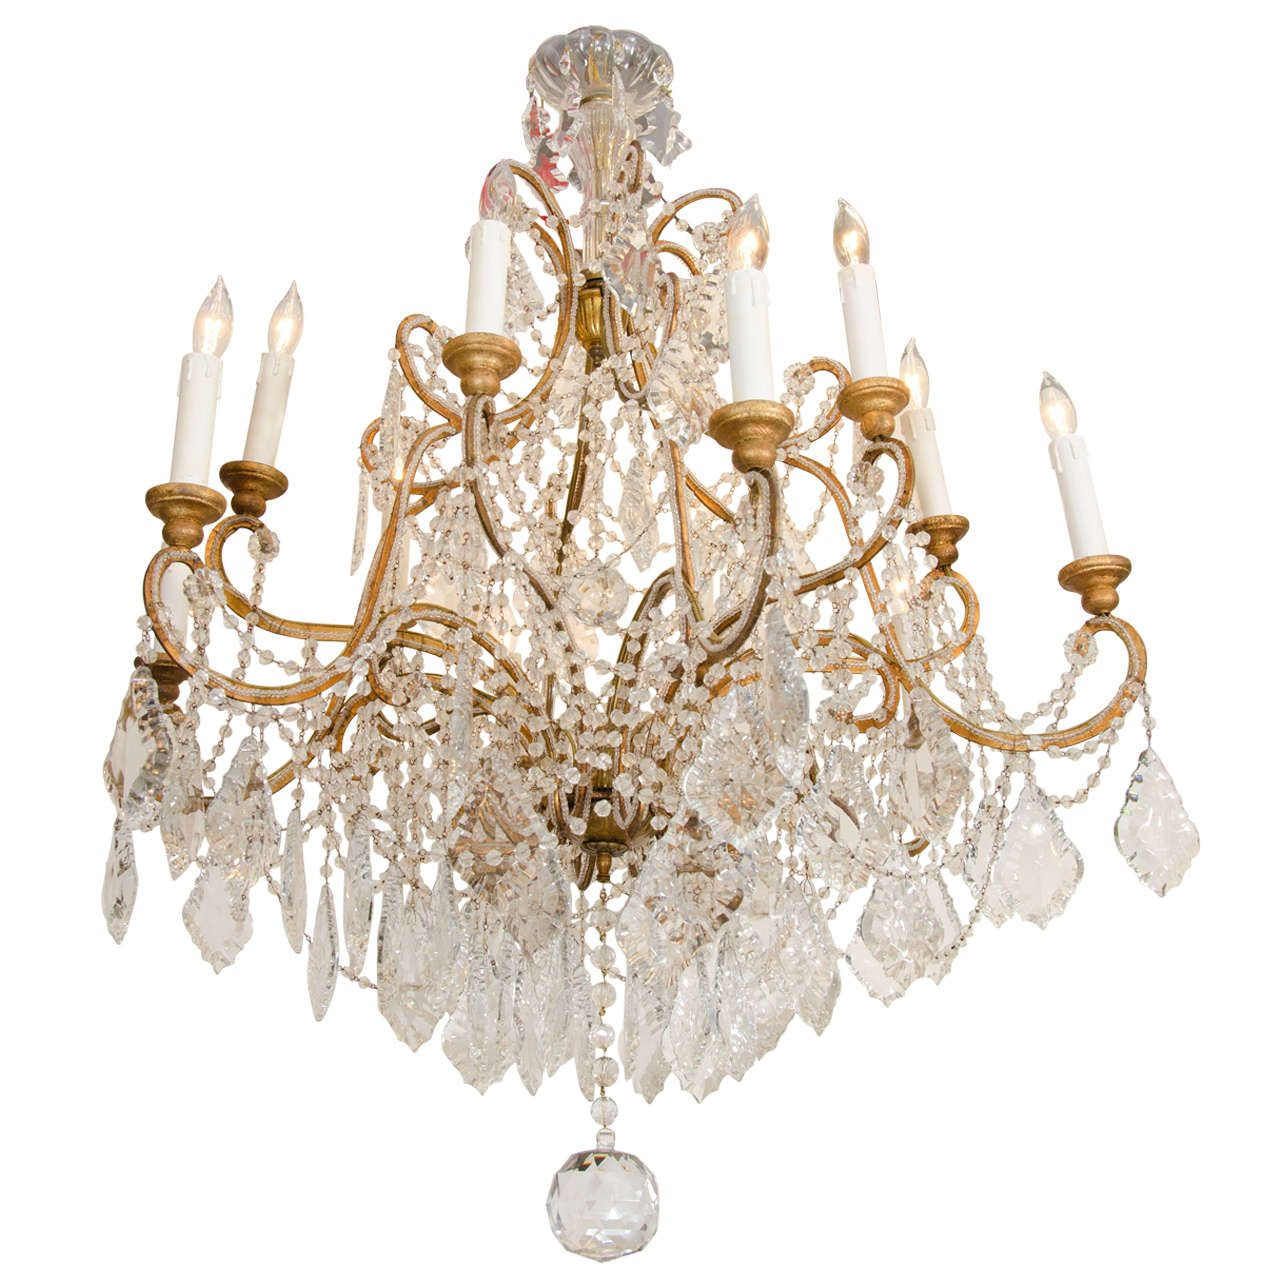 An antique marie antoinette crystal chandelier chandeliers an antique marie antoinette crystal chandelier aloadofball Image collections